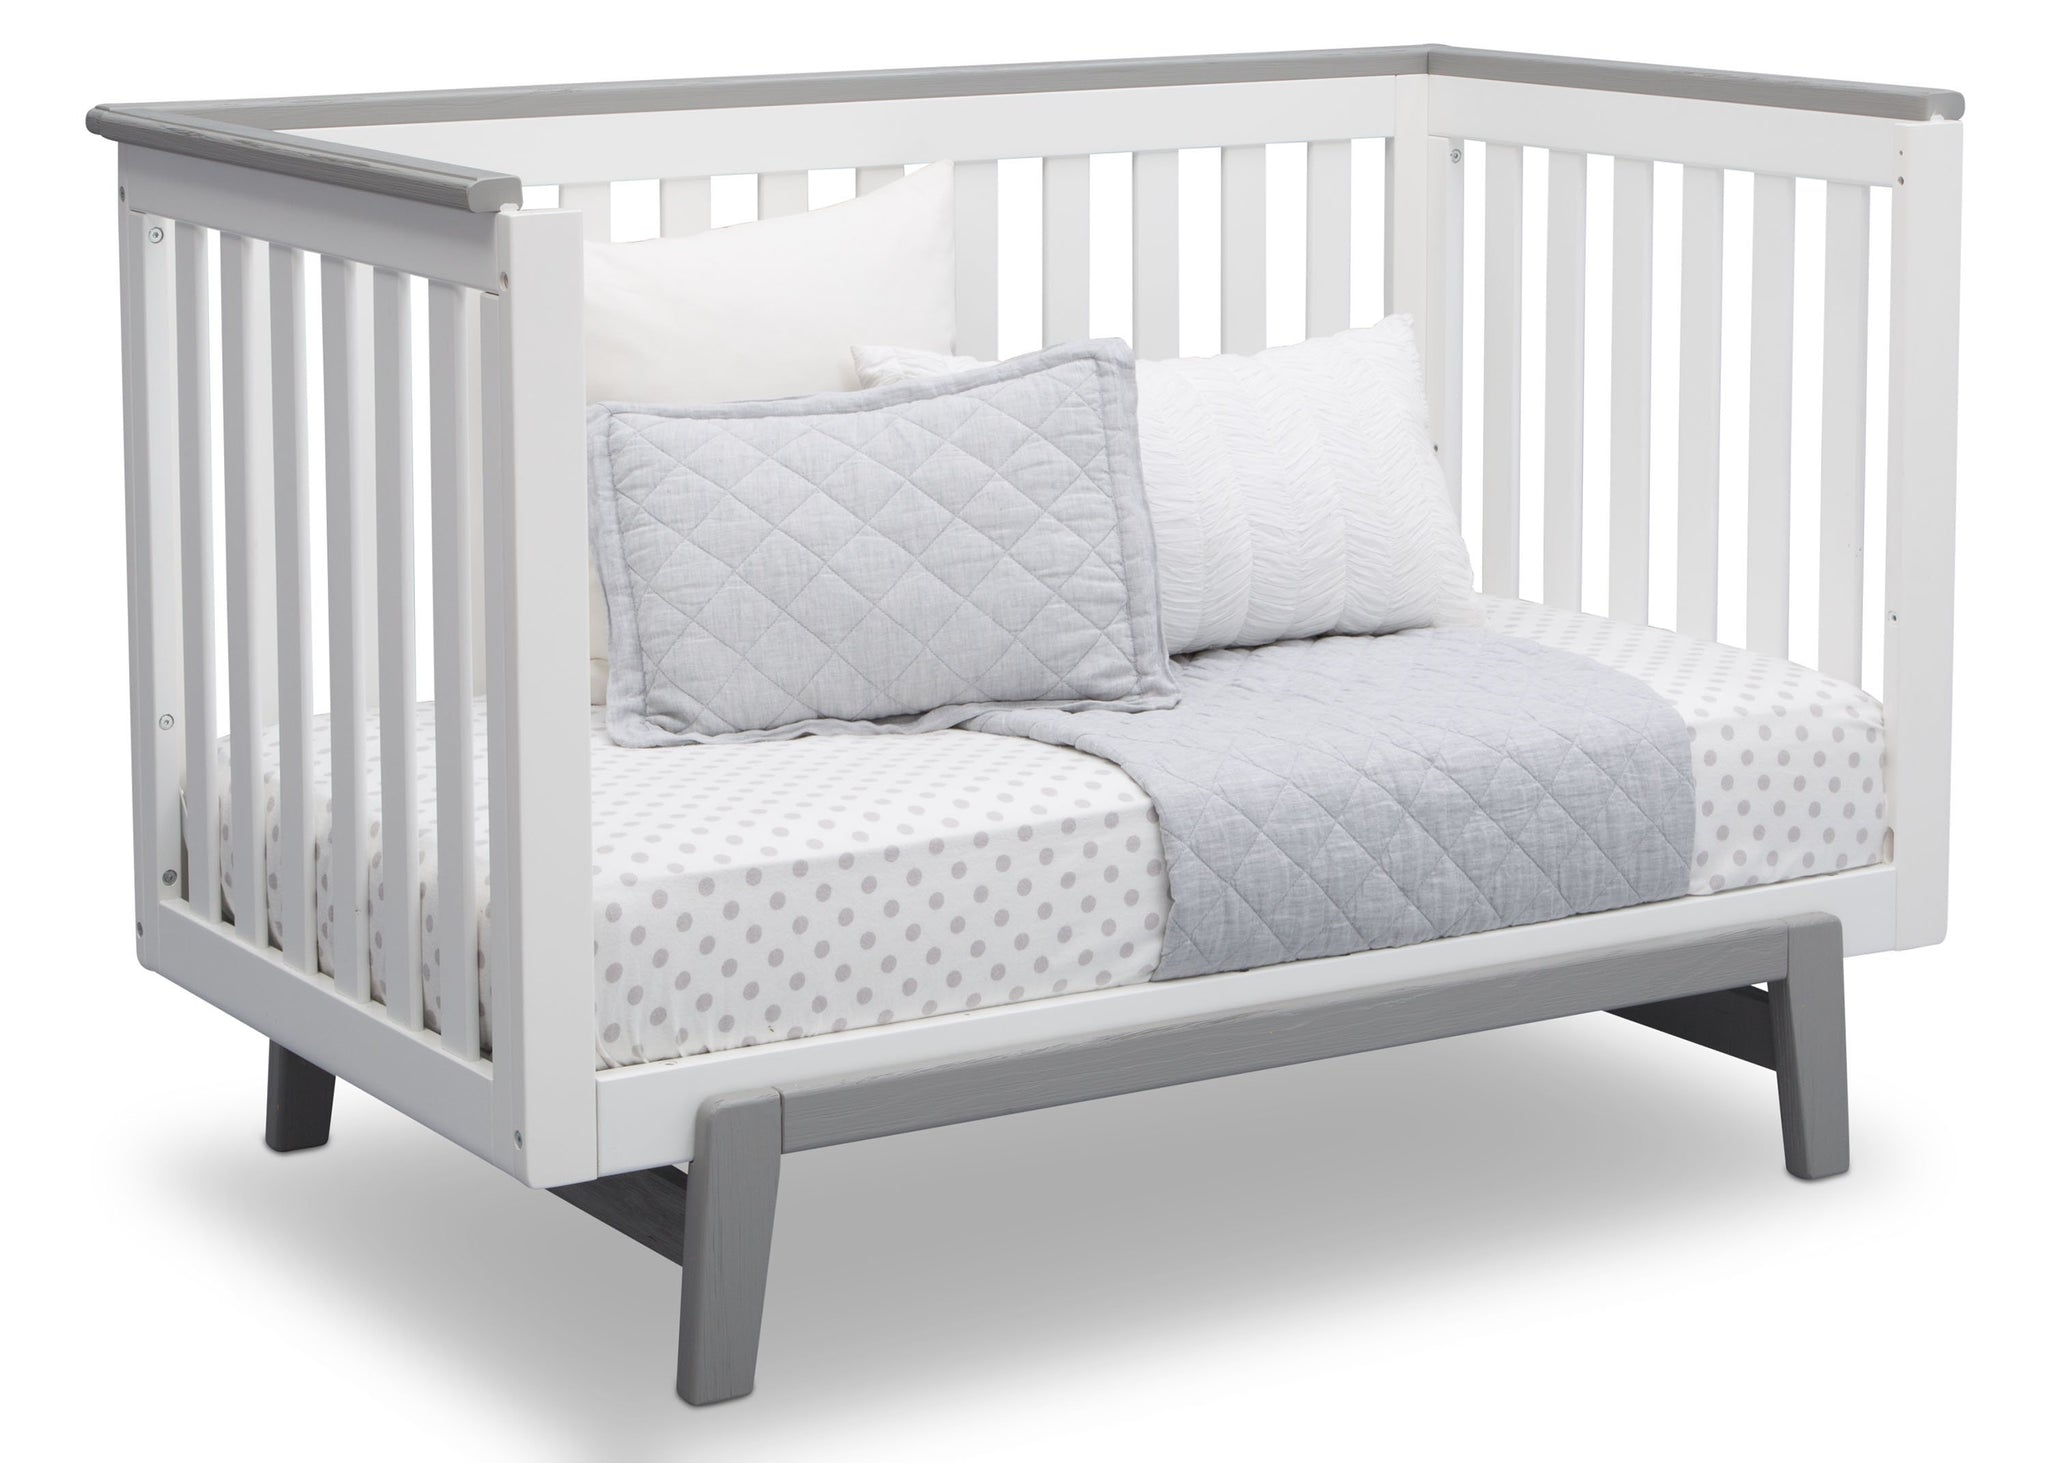 Delta Children Bianca with Rustic Haze (136) Providence Classic 4-in-1 Convertible Crib (548650), Day Bed, b5b